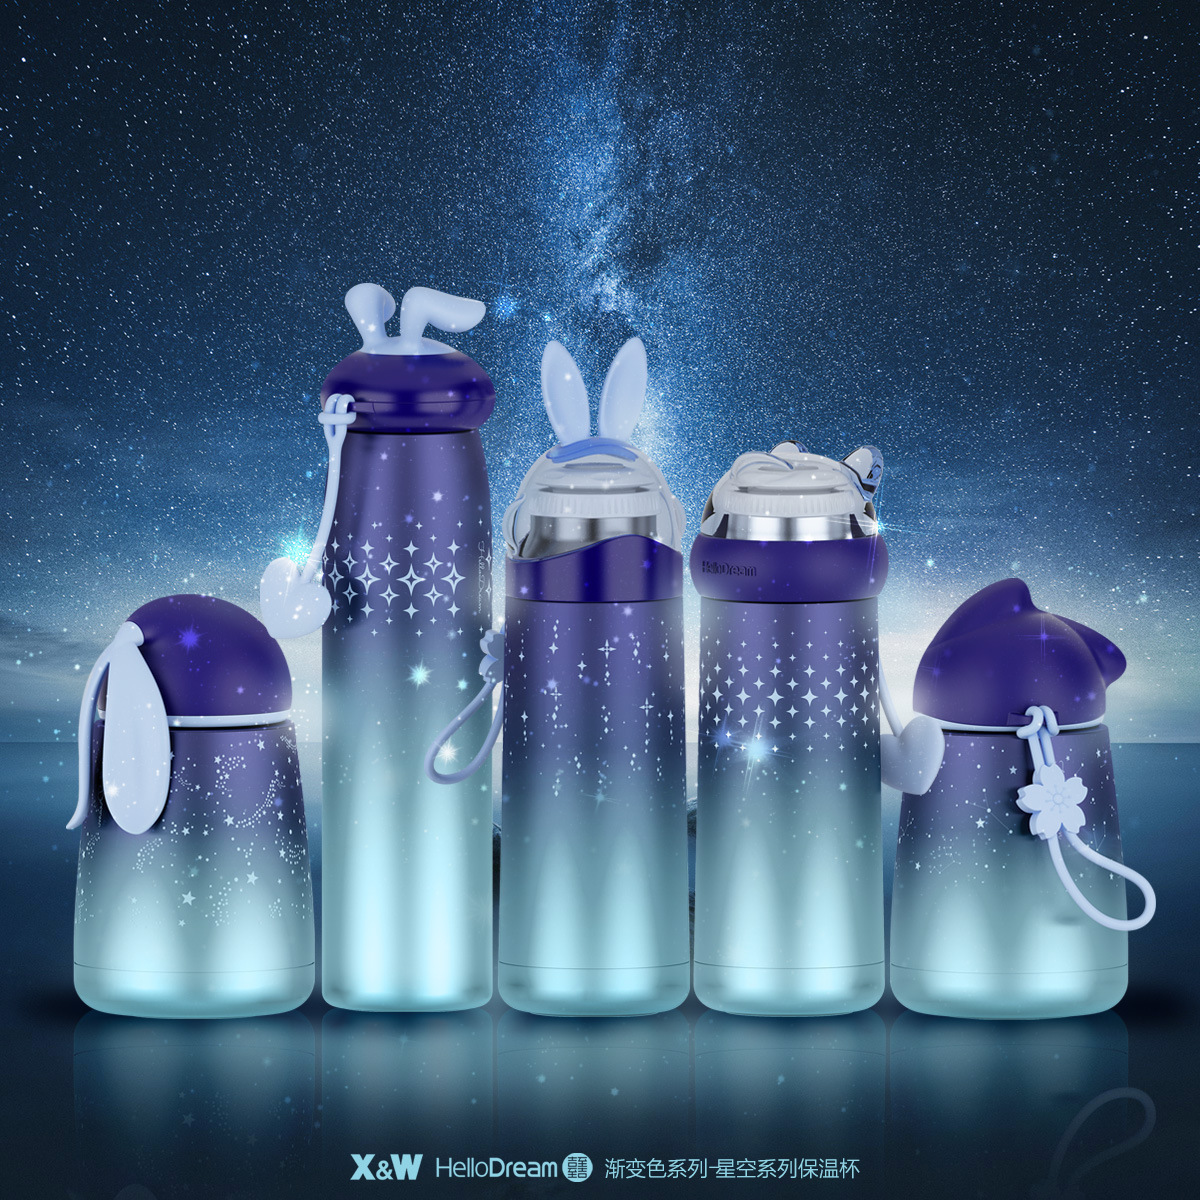 Stainless Steel Cute Space Star Thermal bottle Travel 350ML Insulated Mug Creative Coffee Mugs Flask For Tea Sport Drinkware|Water Bottles| |  - AliExpress